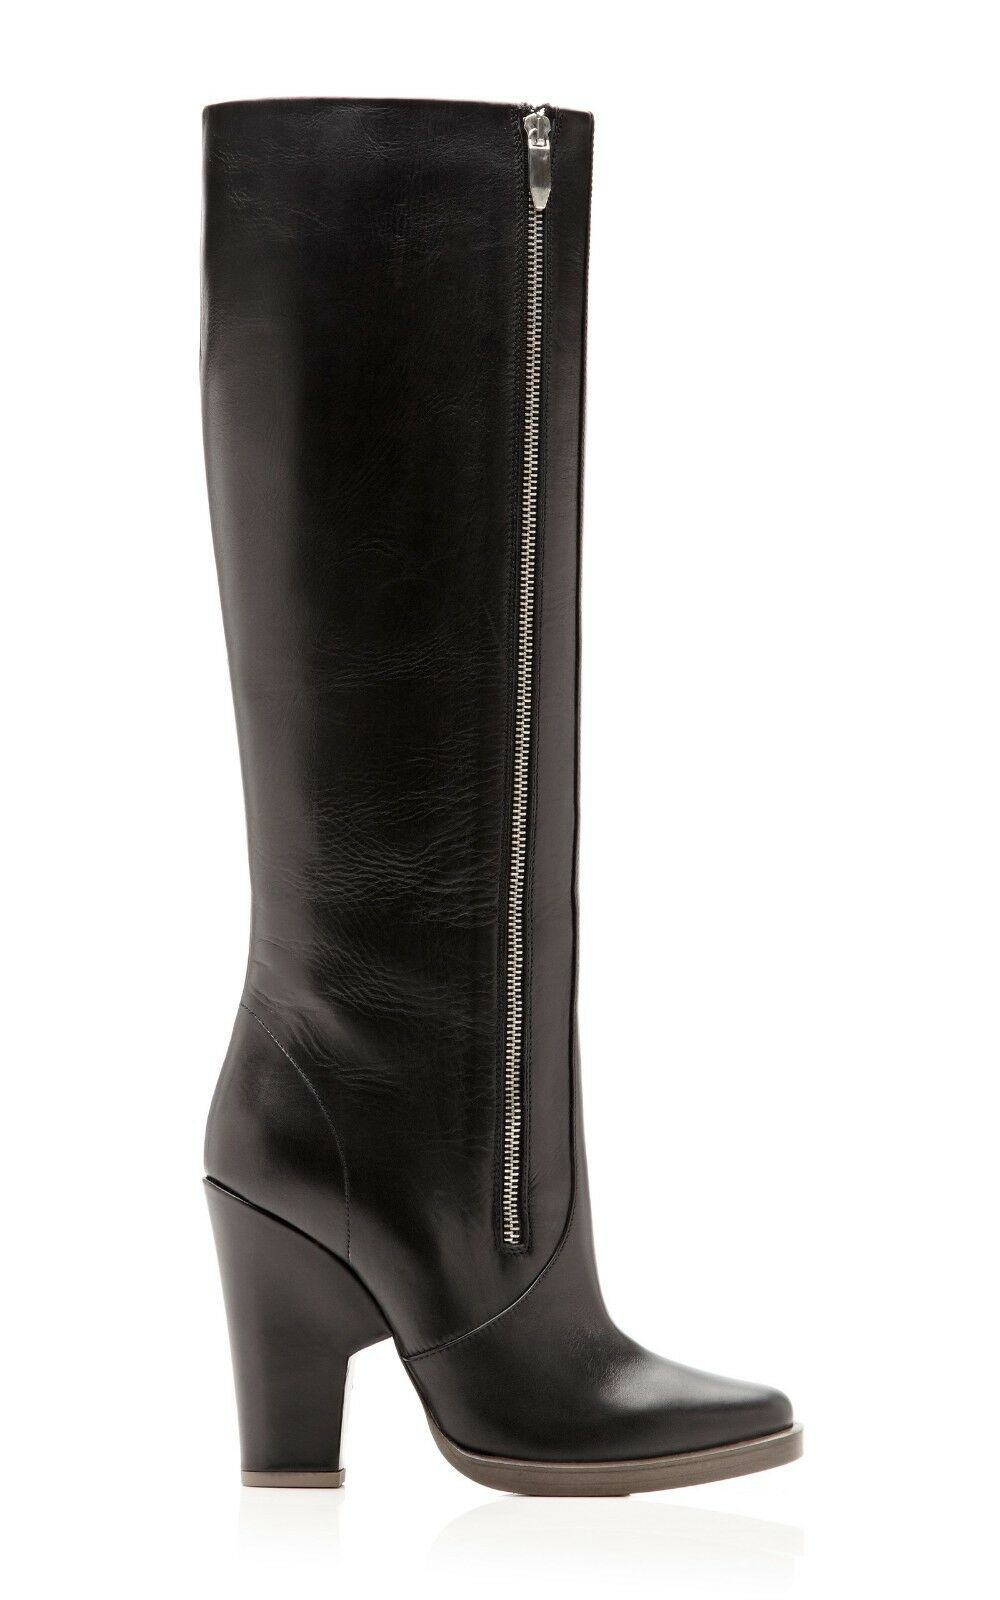 Theyskens' Theory Eames Atello Leather Boot Tall Boots Sz 36 NWB  995